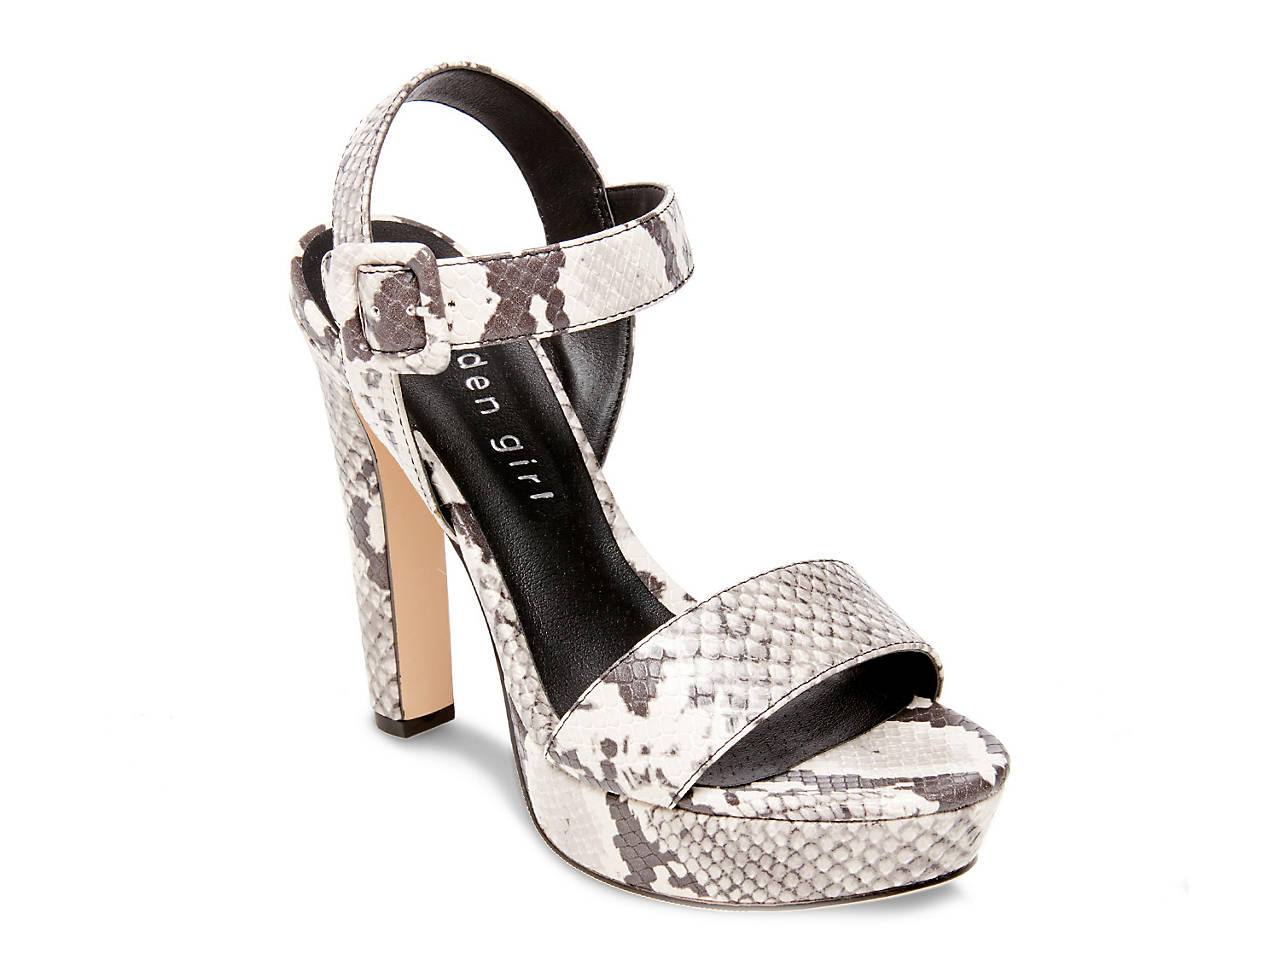 9bffde92e Madden Girl Rollo Platform Sandal Women s Shoes